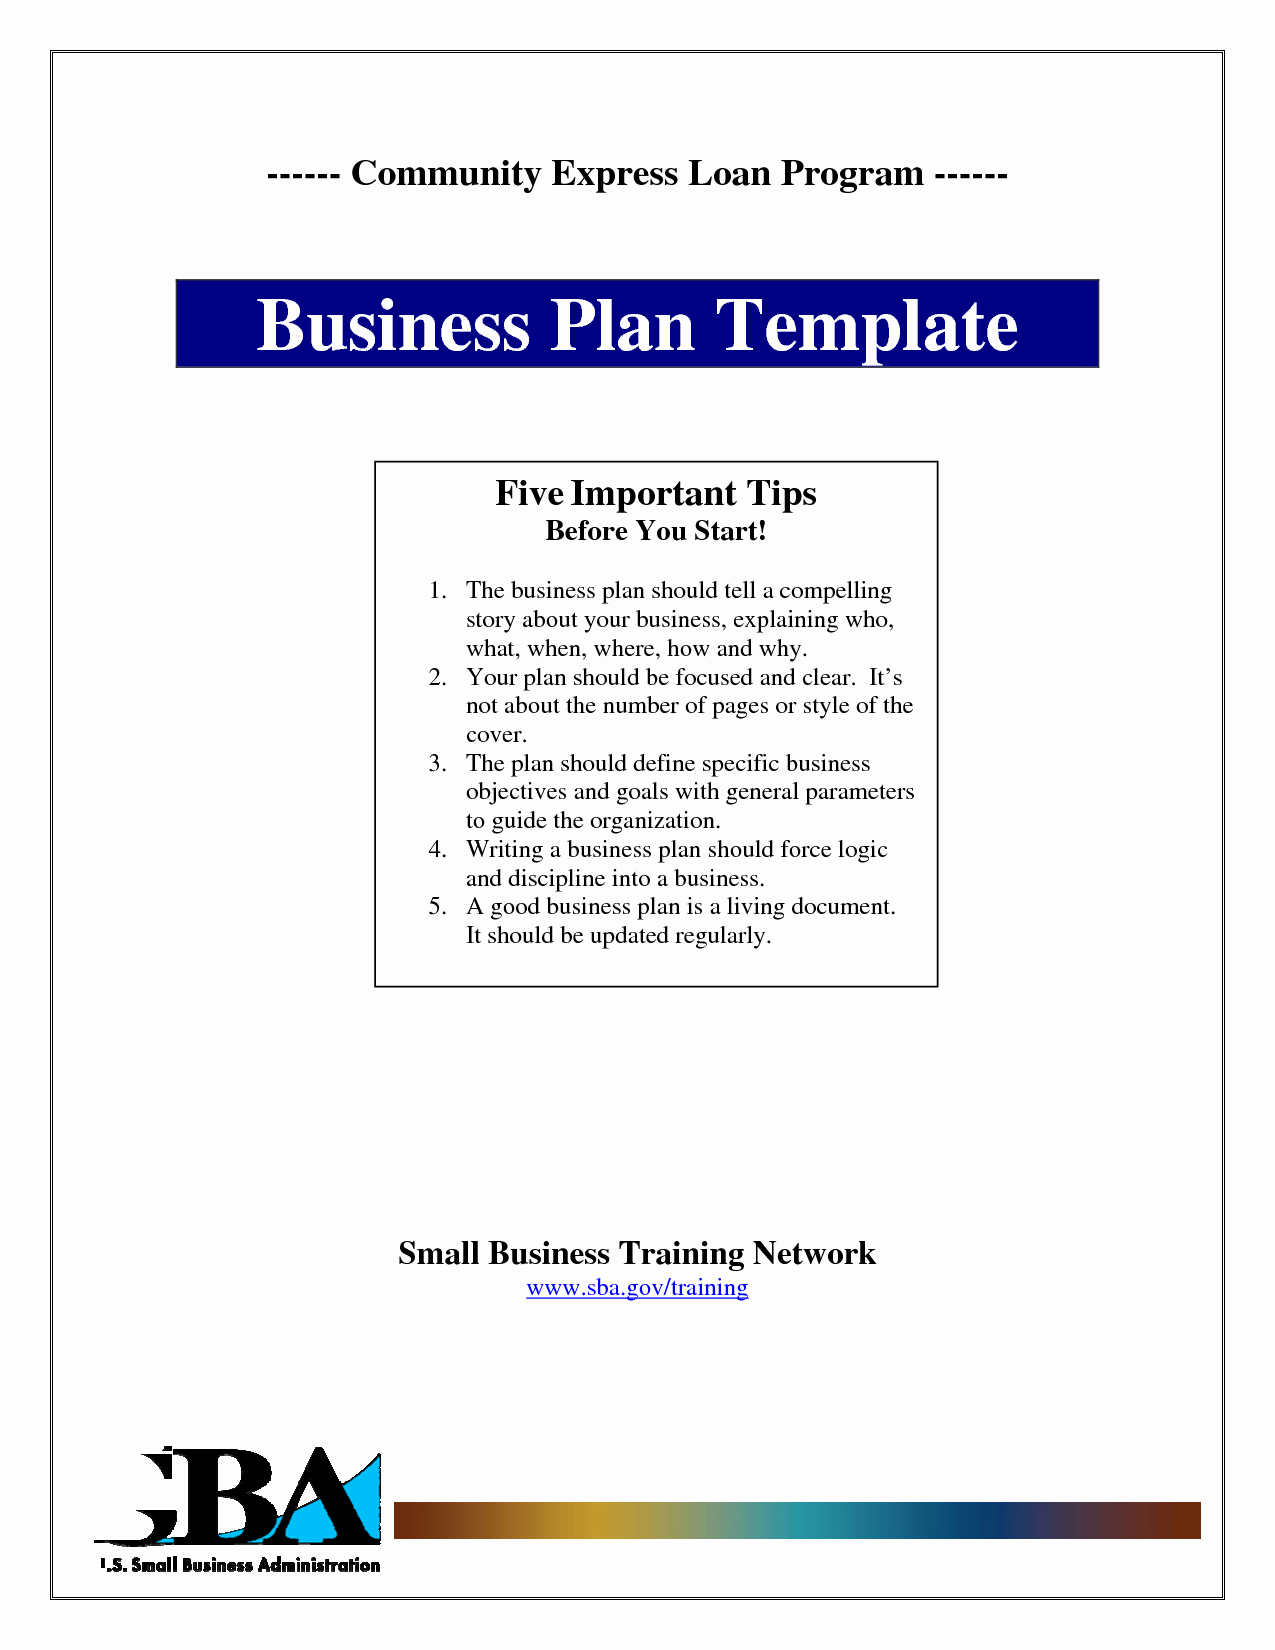 And Business Plan Cover Page Template – Guiaubuntupt Throughout Business Plan Cover Page Template